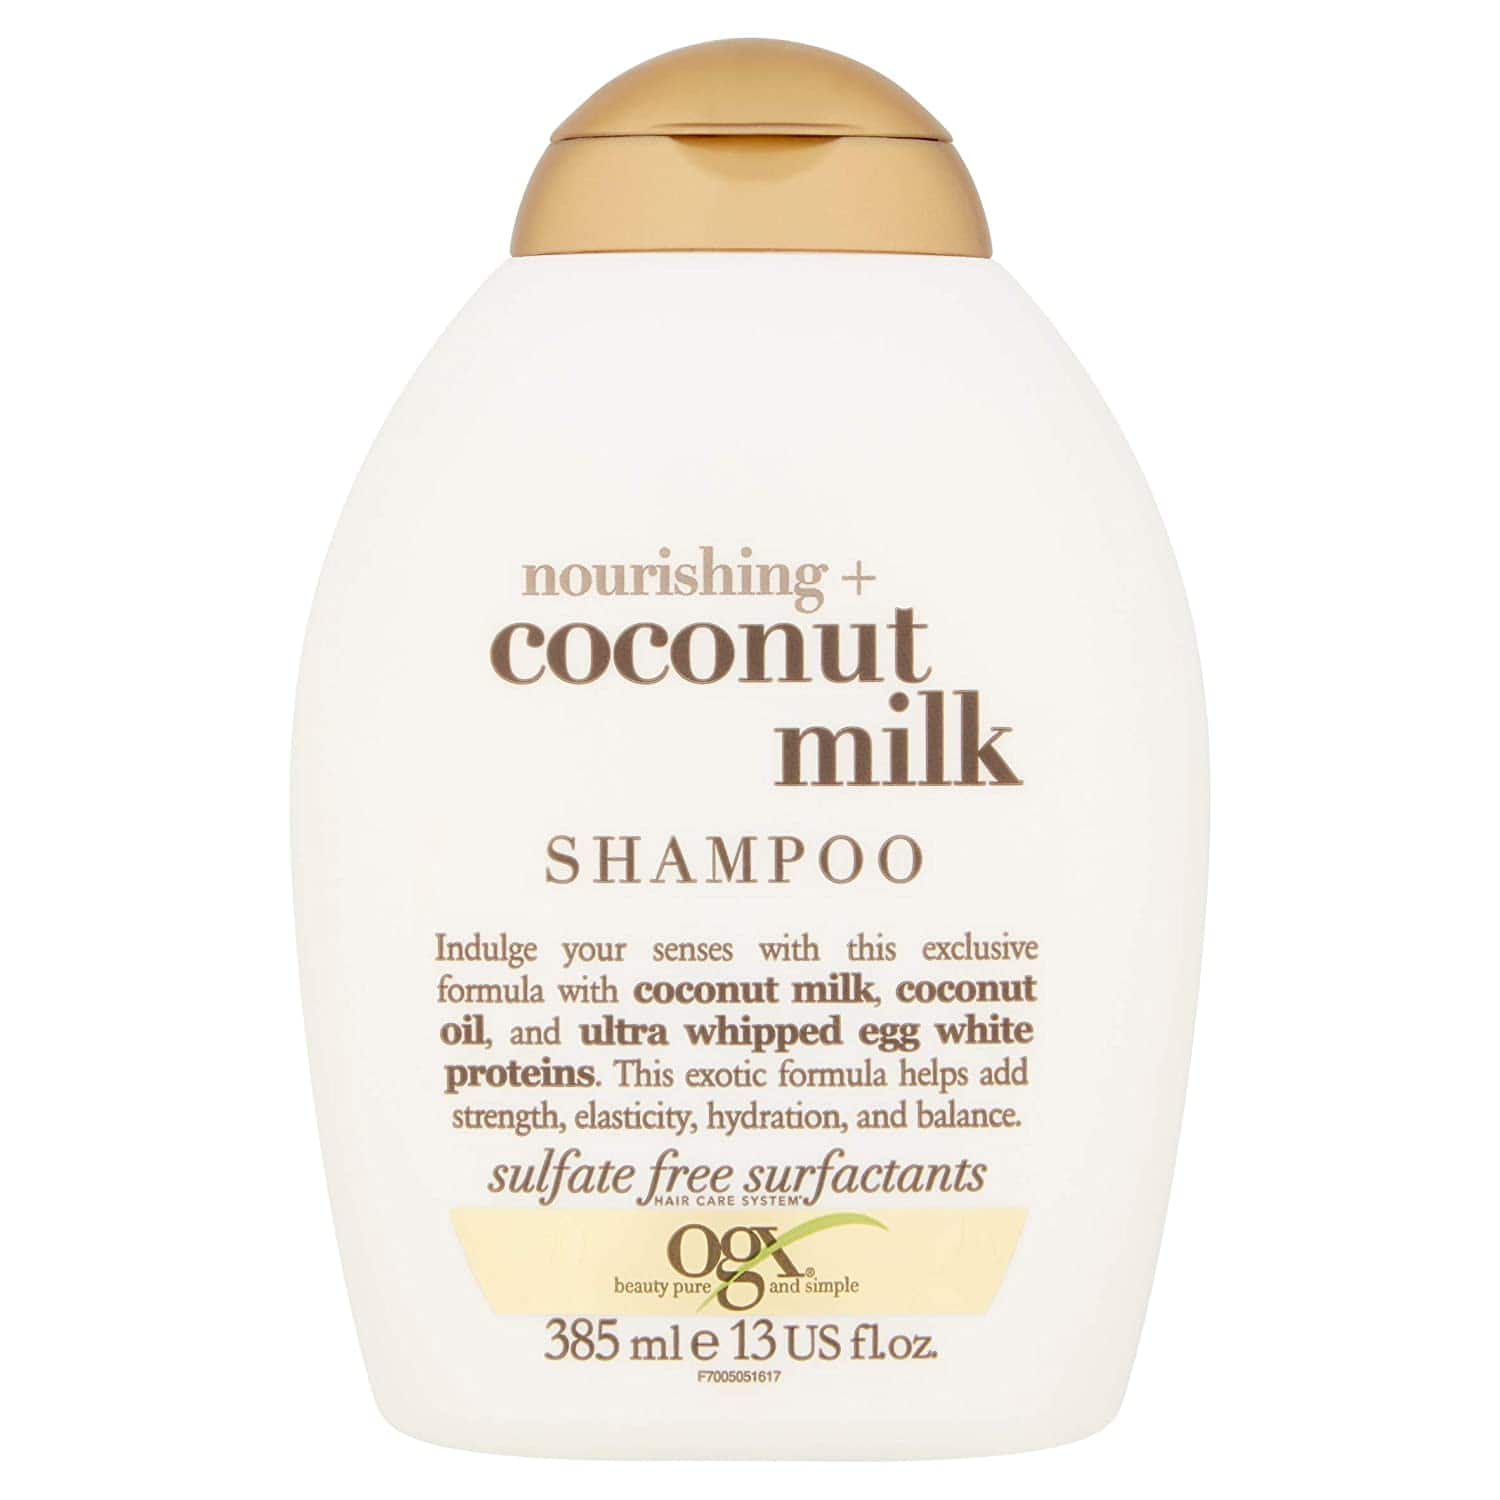 OGX Nourishing + Coconut Milk Shampoo, 13 Ounce - $3.72 with 5% (or $3.13 with 15% off) S & S